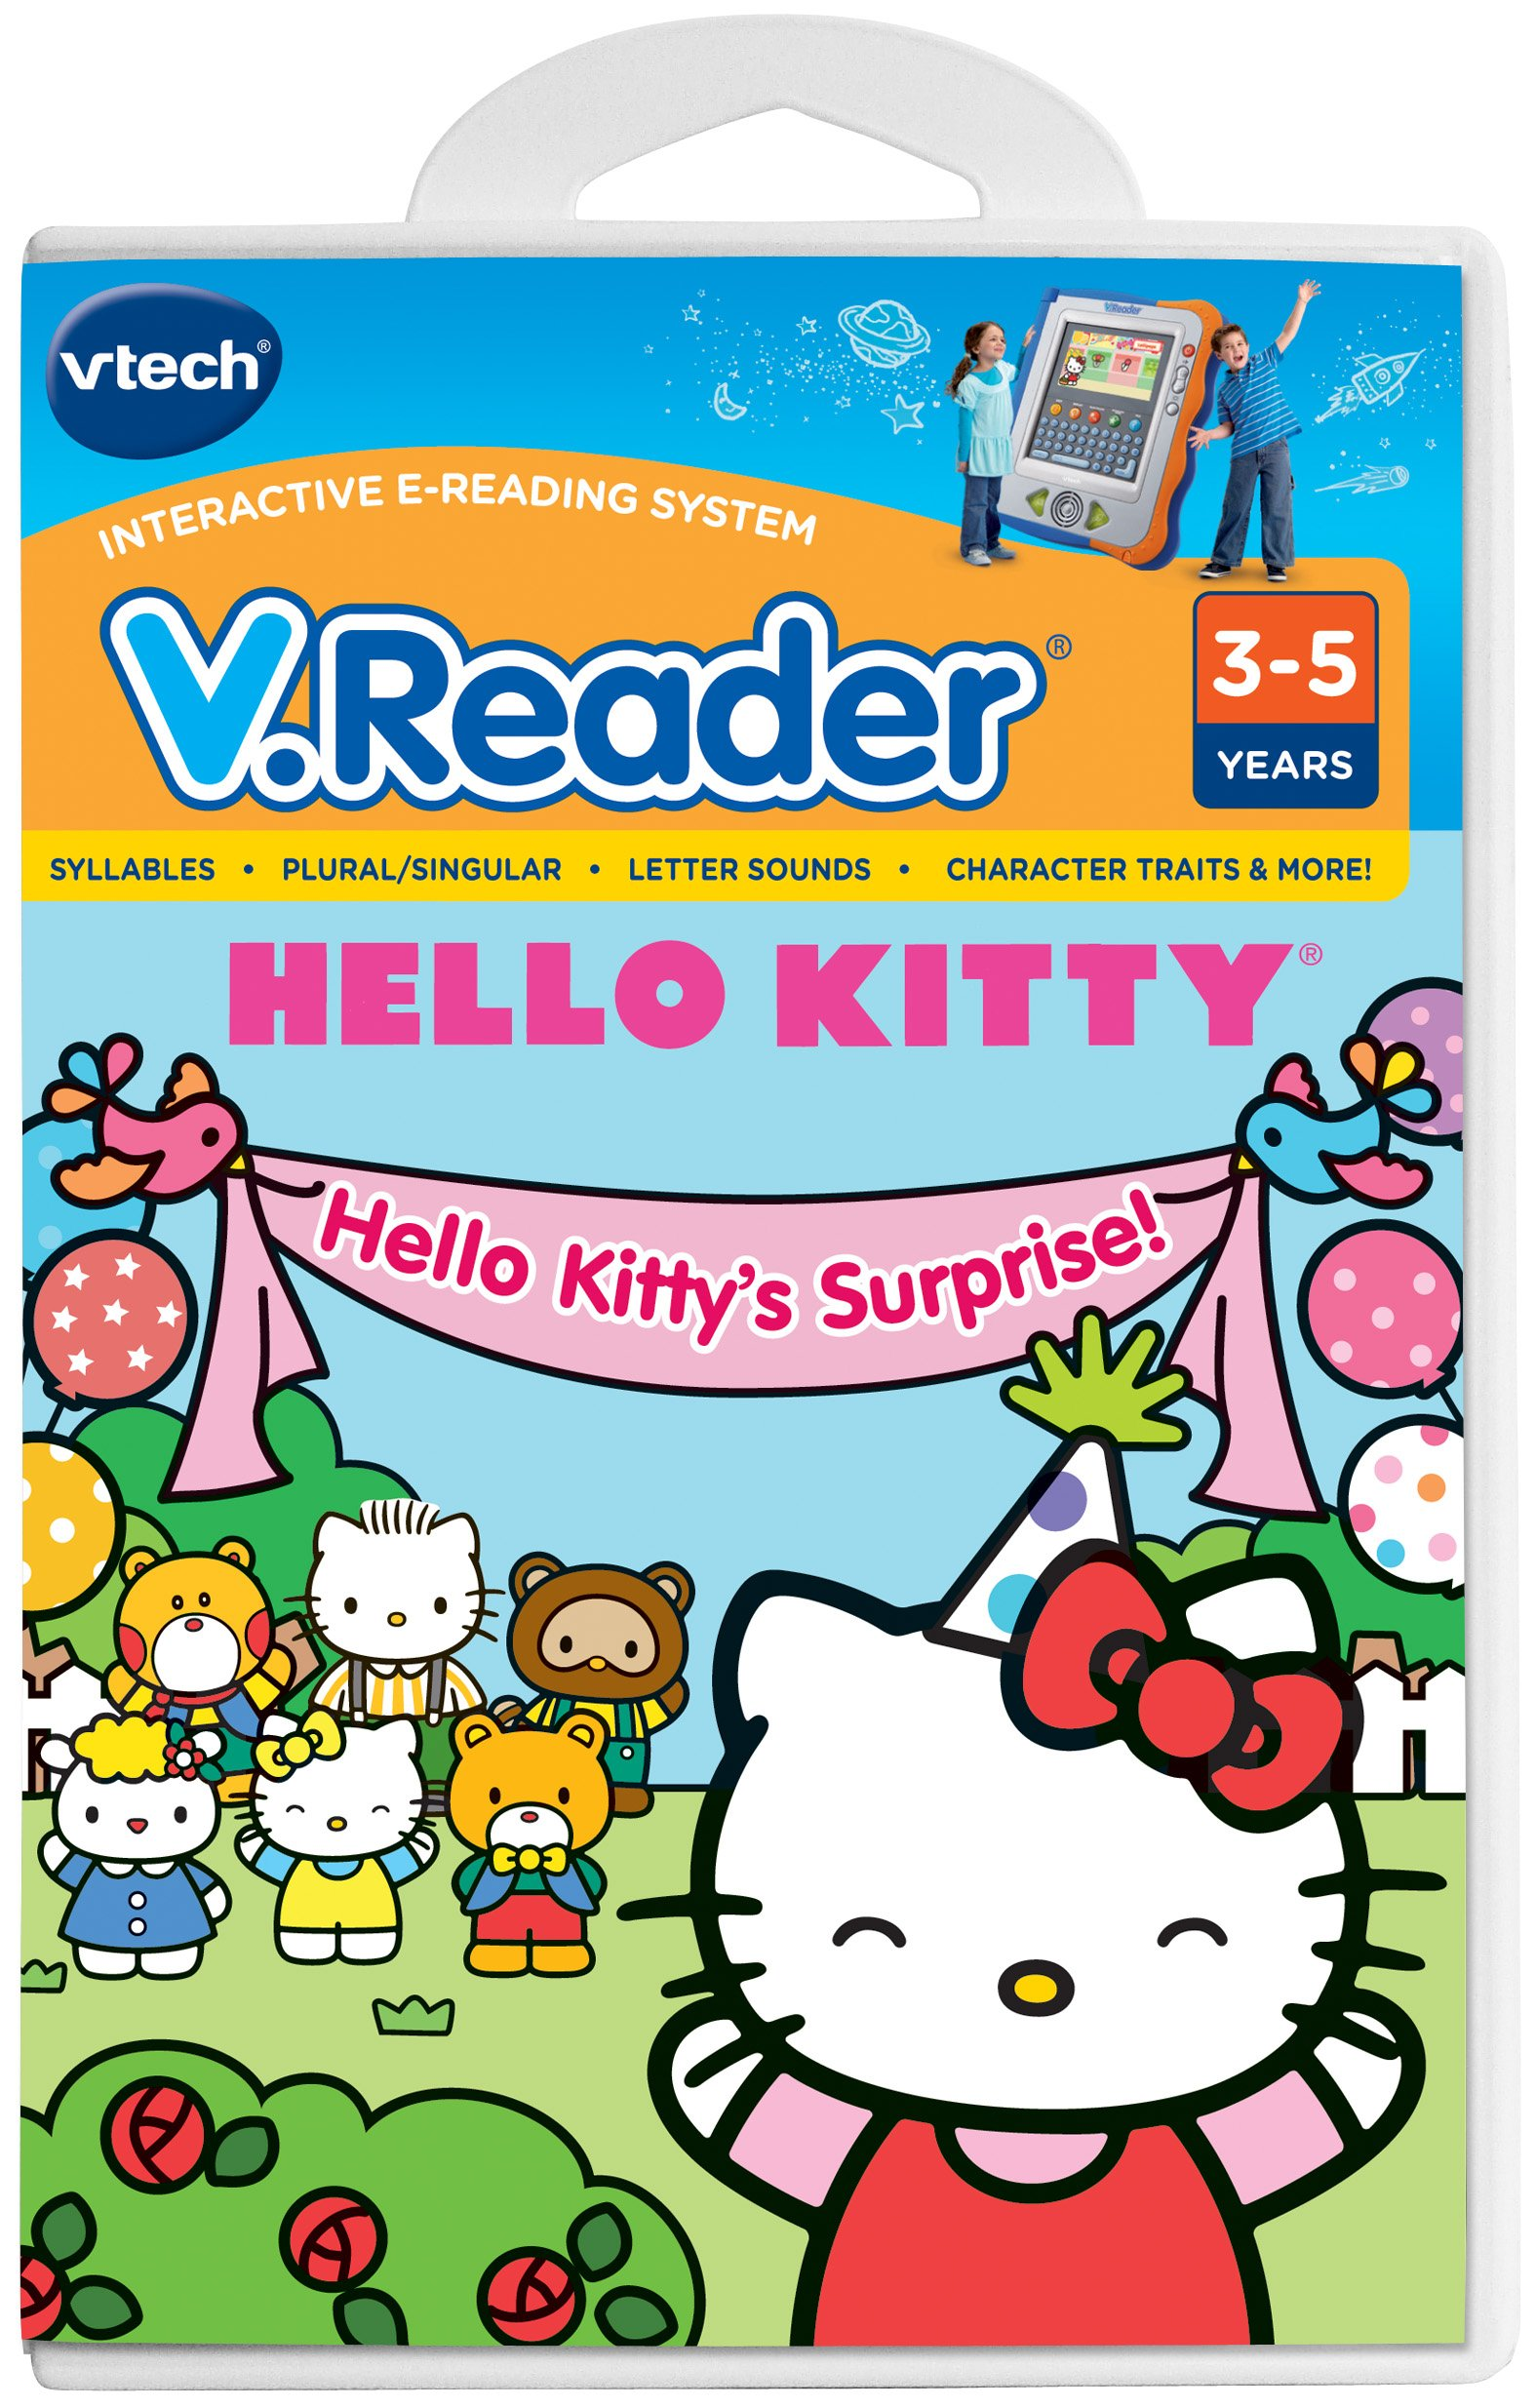 VTech V.Reader Cartridge - Hello Kitty